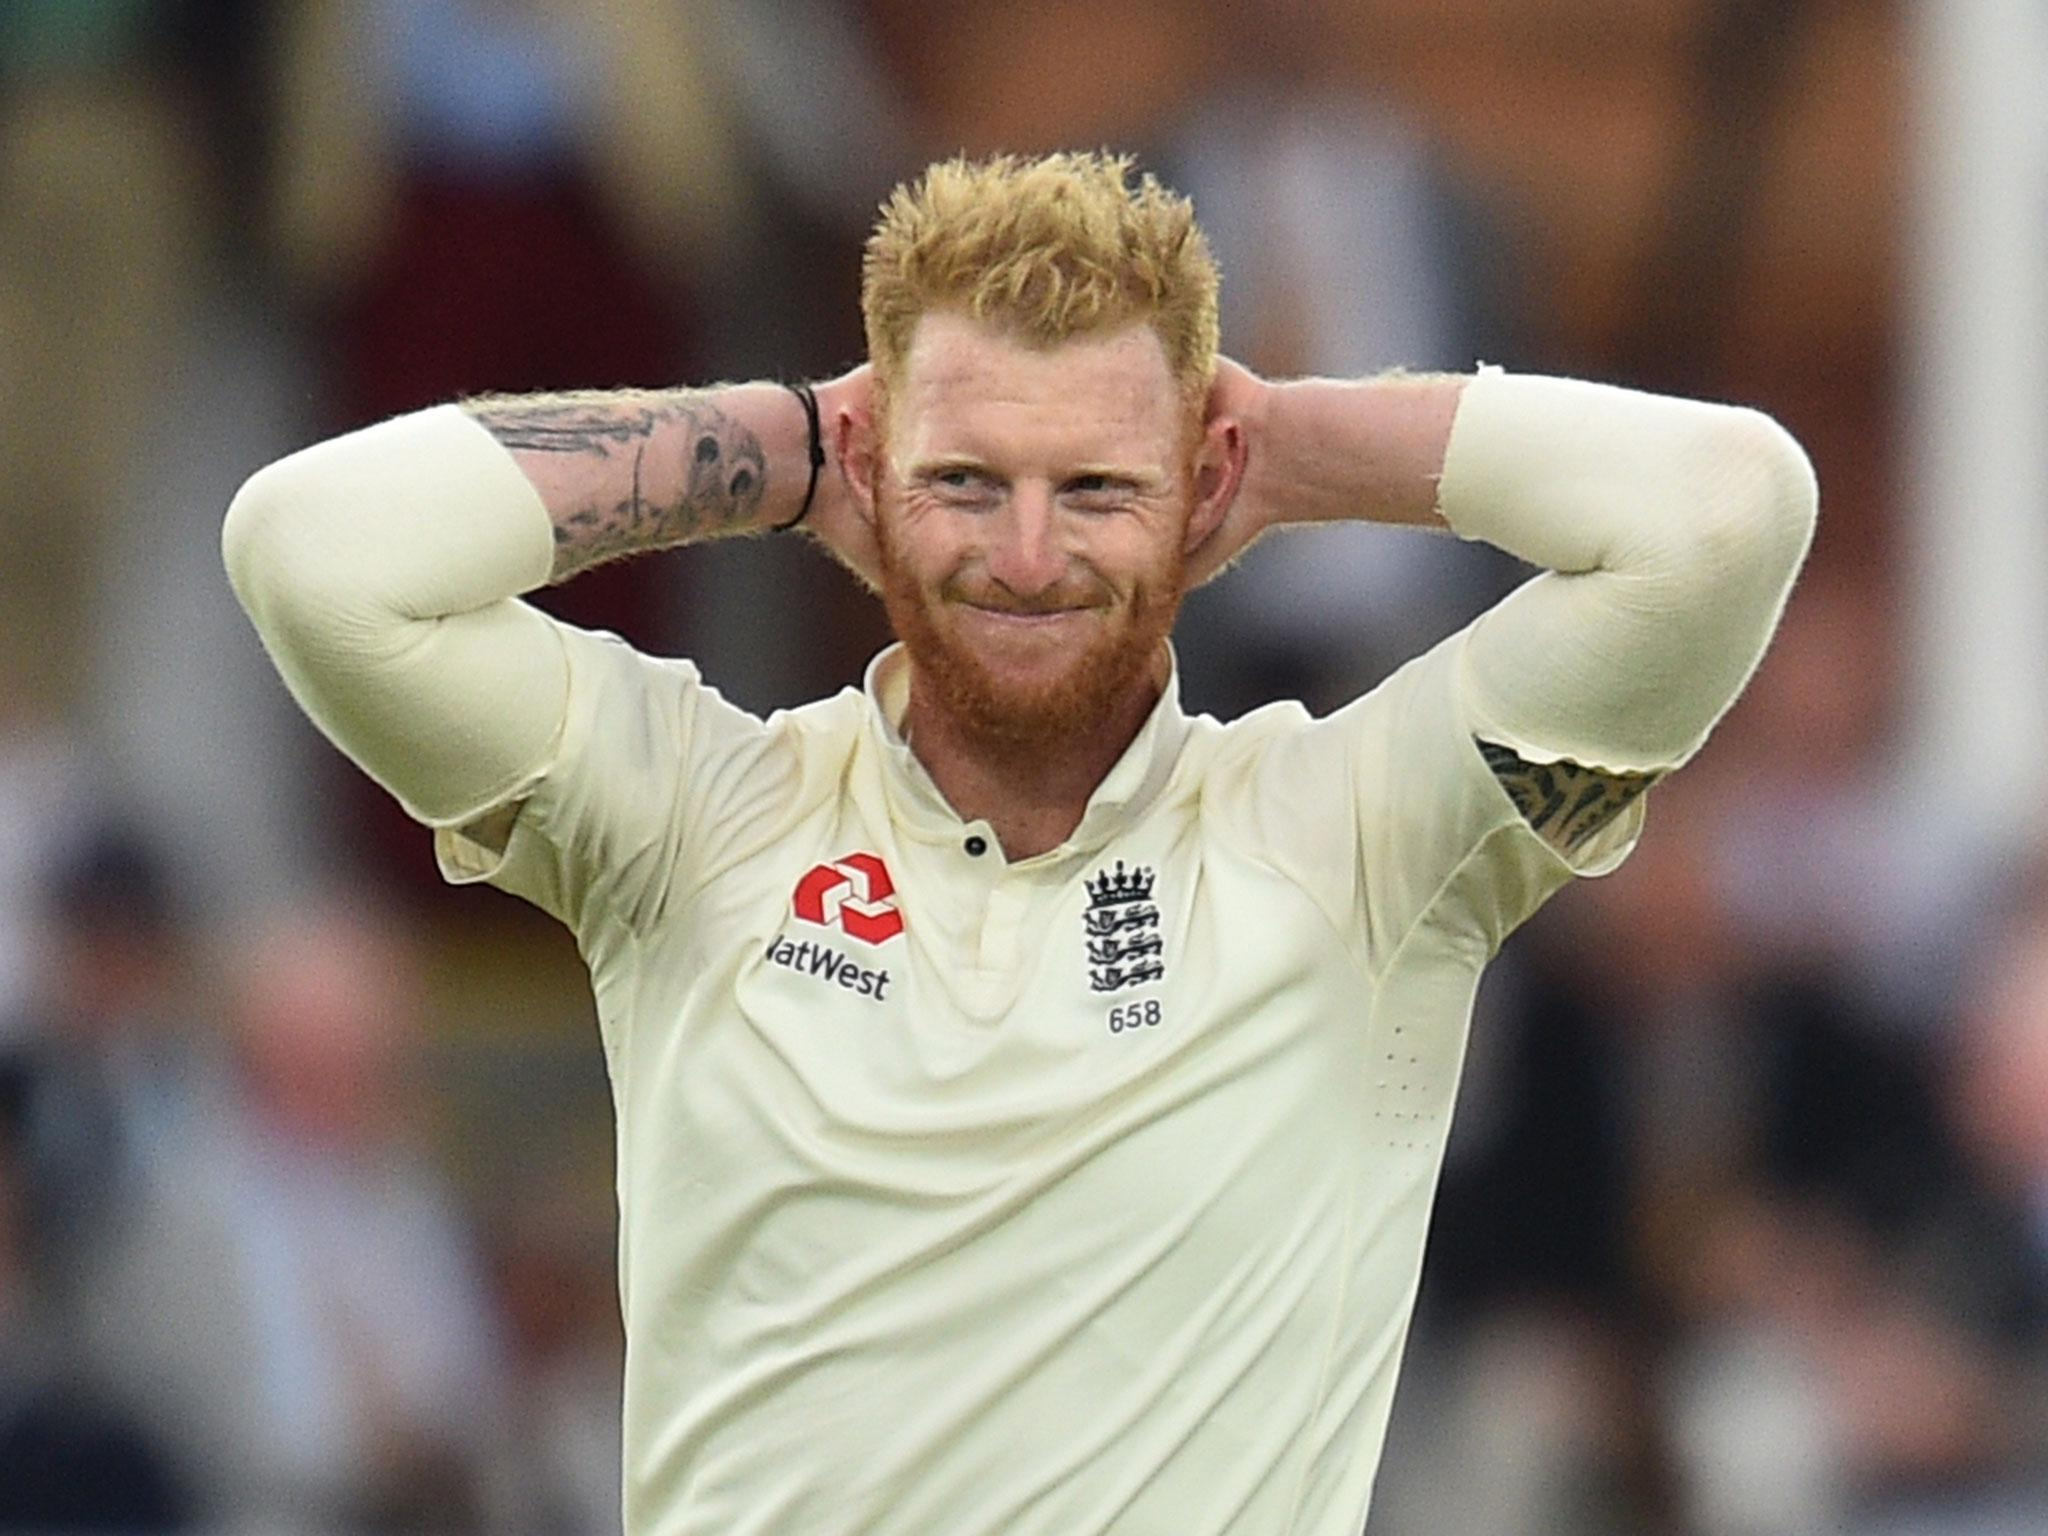 England confirm Ben Stokes will not travel to Australia with the rest of the squad for the Ashes series